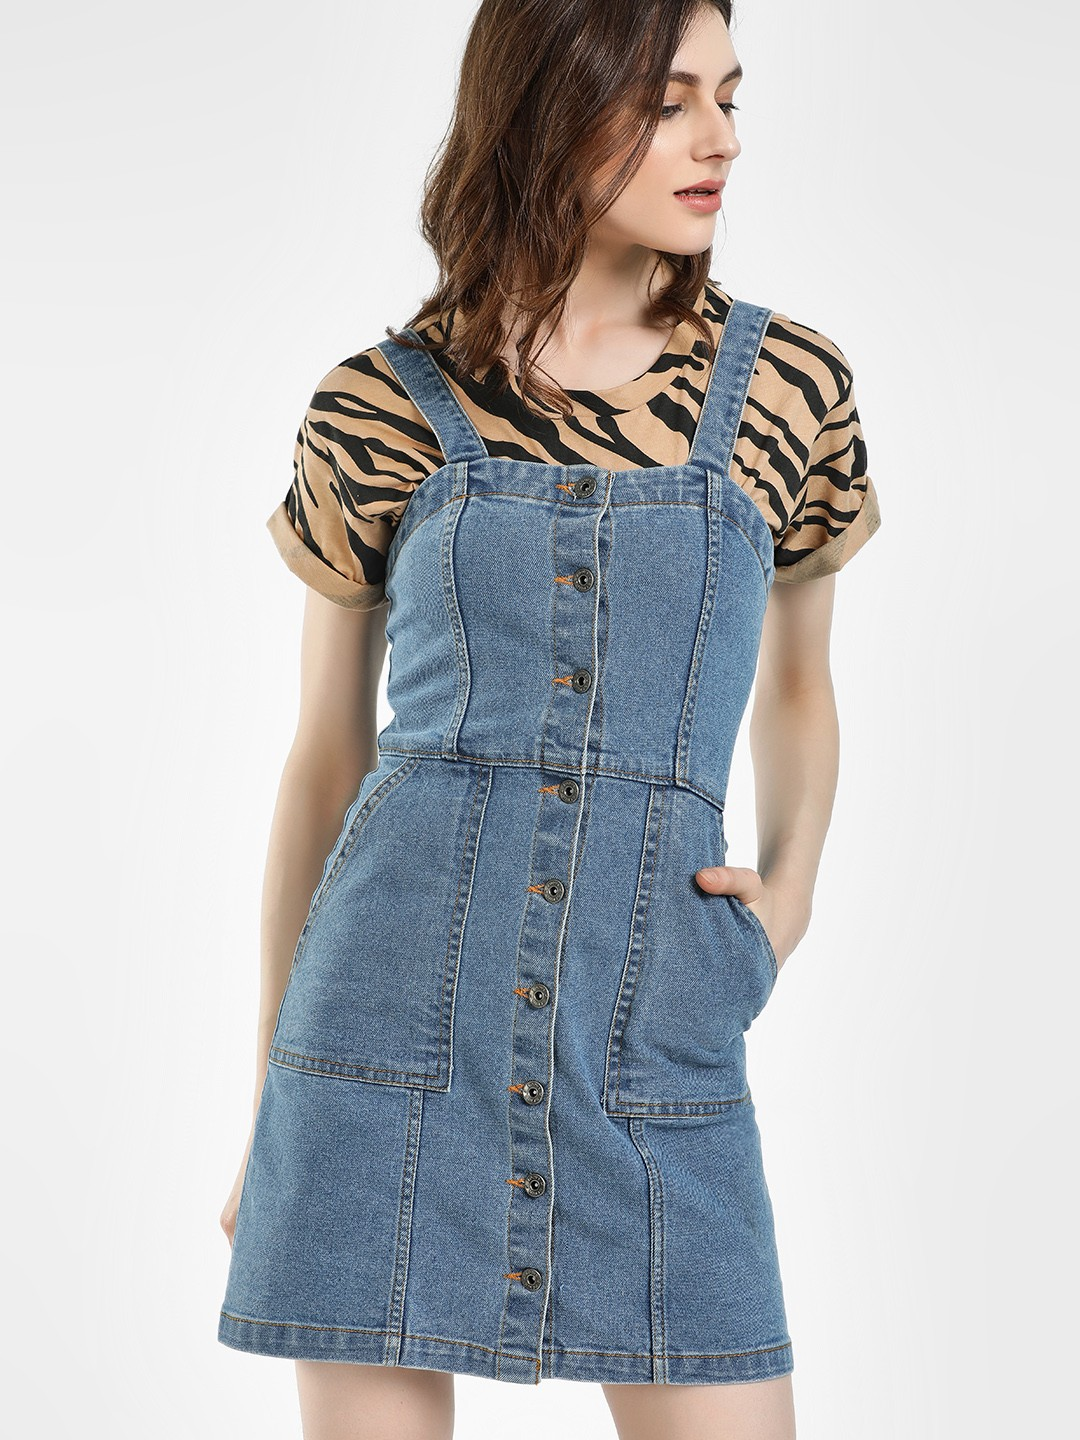 K Denim Blue KOOVS Pinafore Denim Dress 1